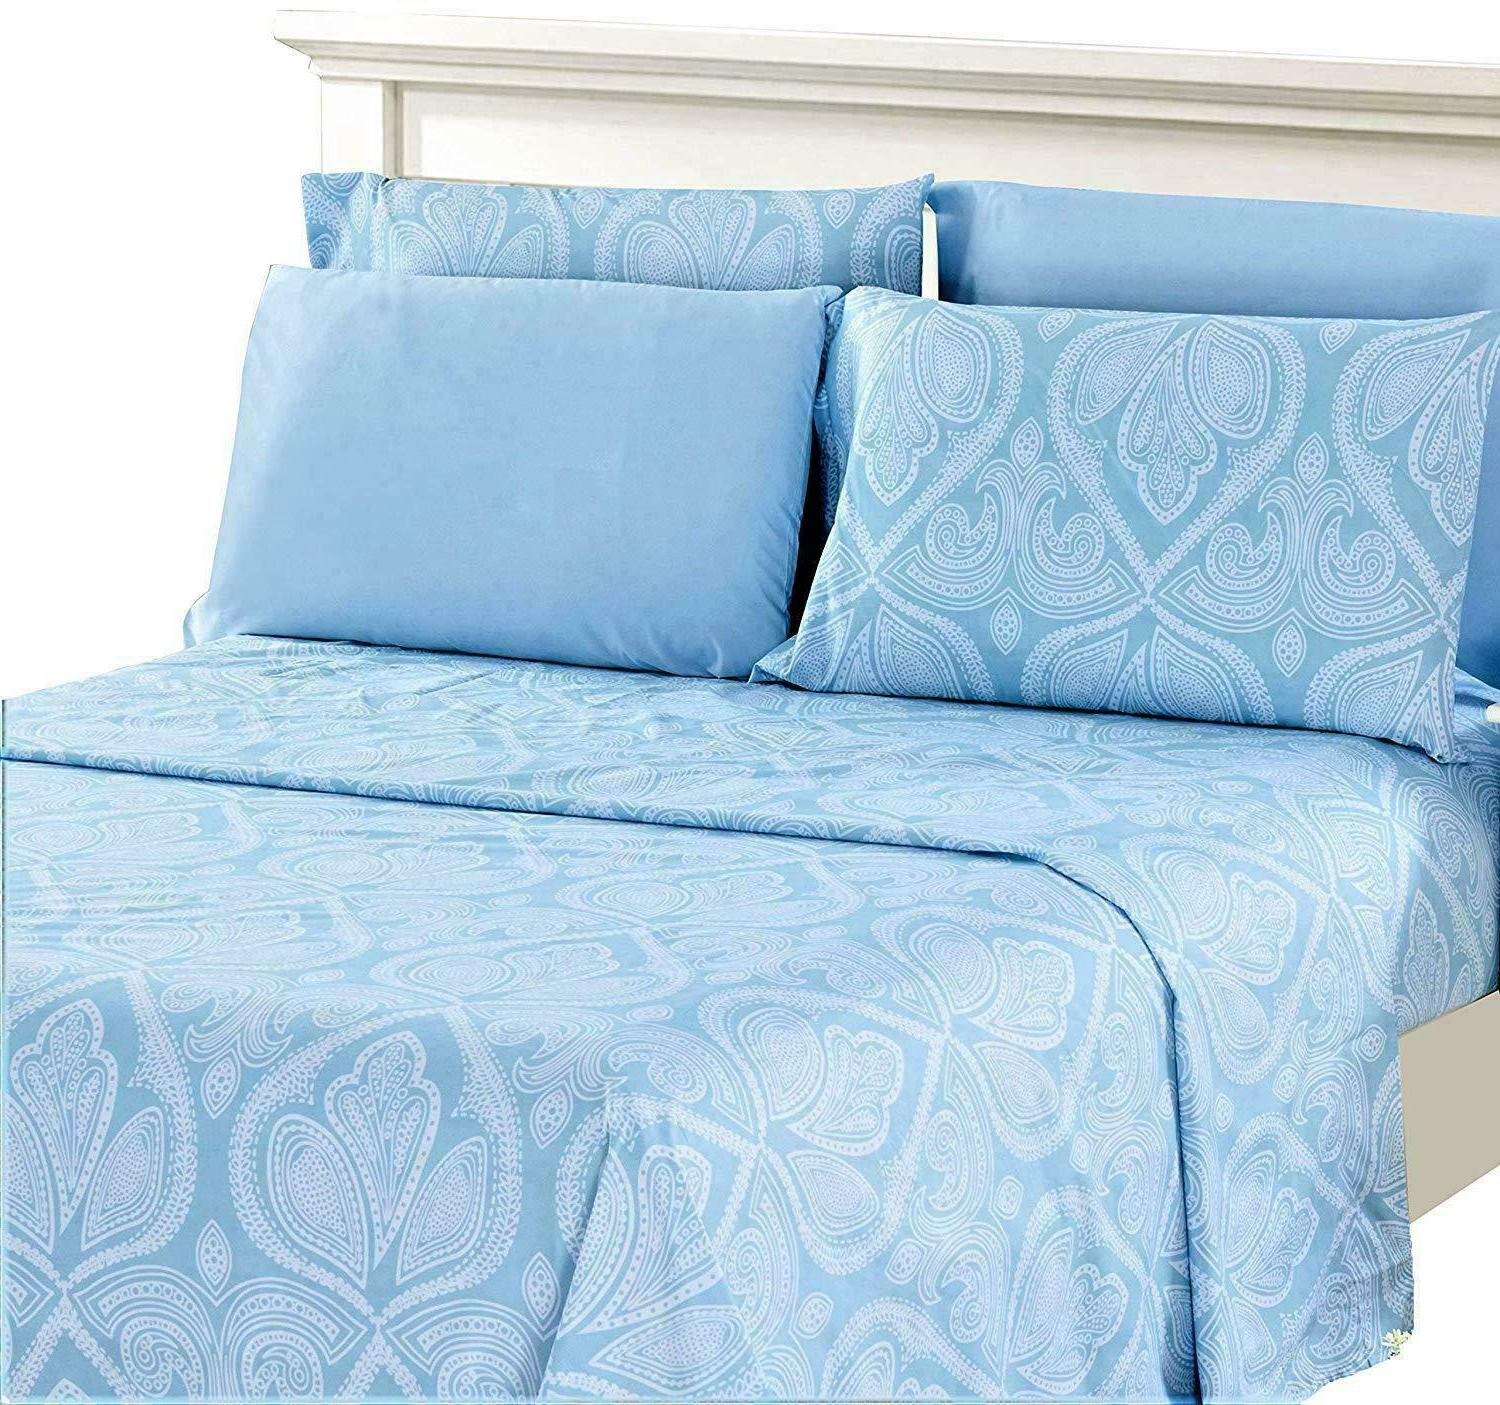 Bed 1800 Count Egyptian Paisley Sheets